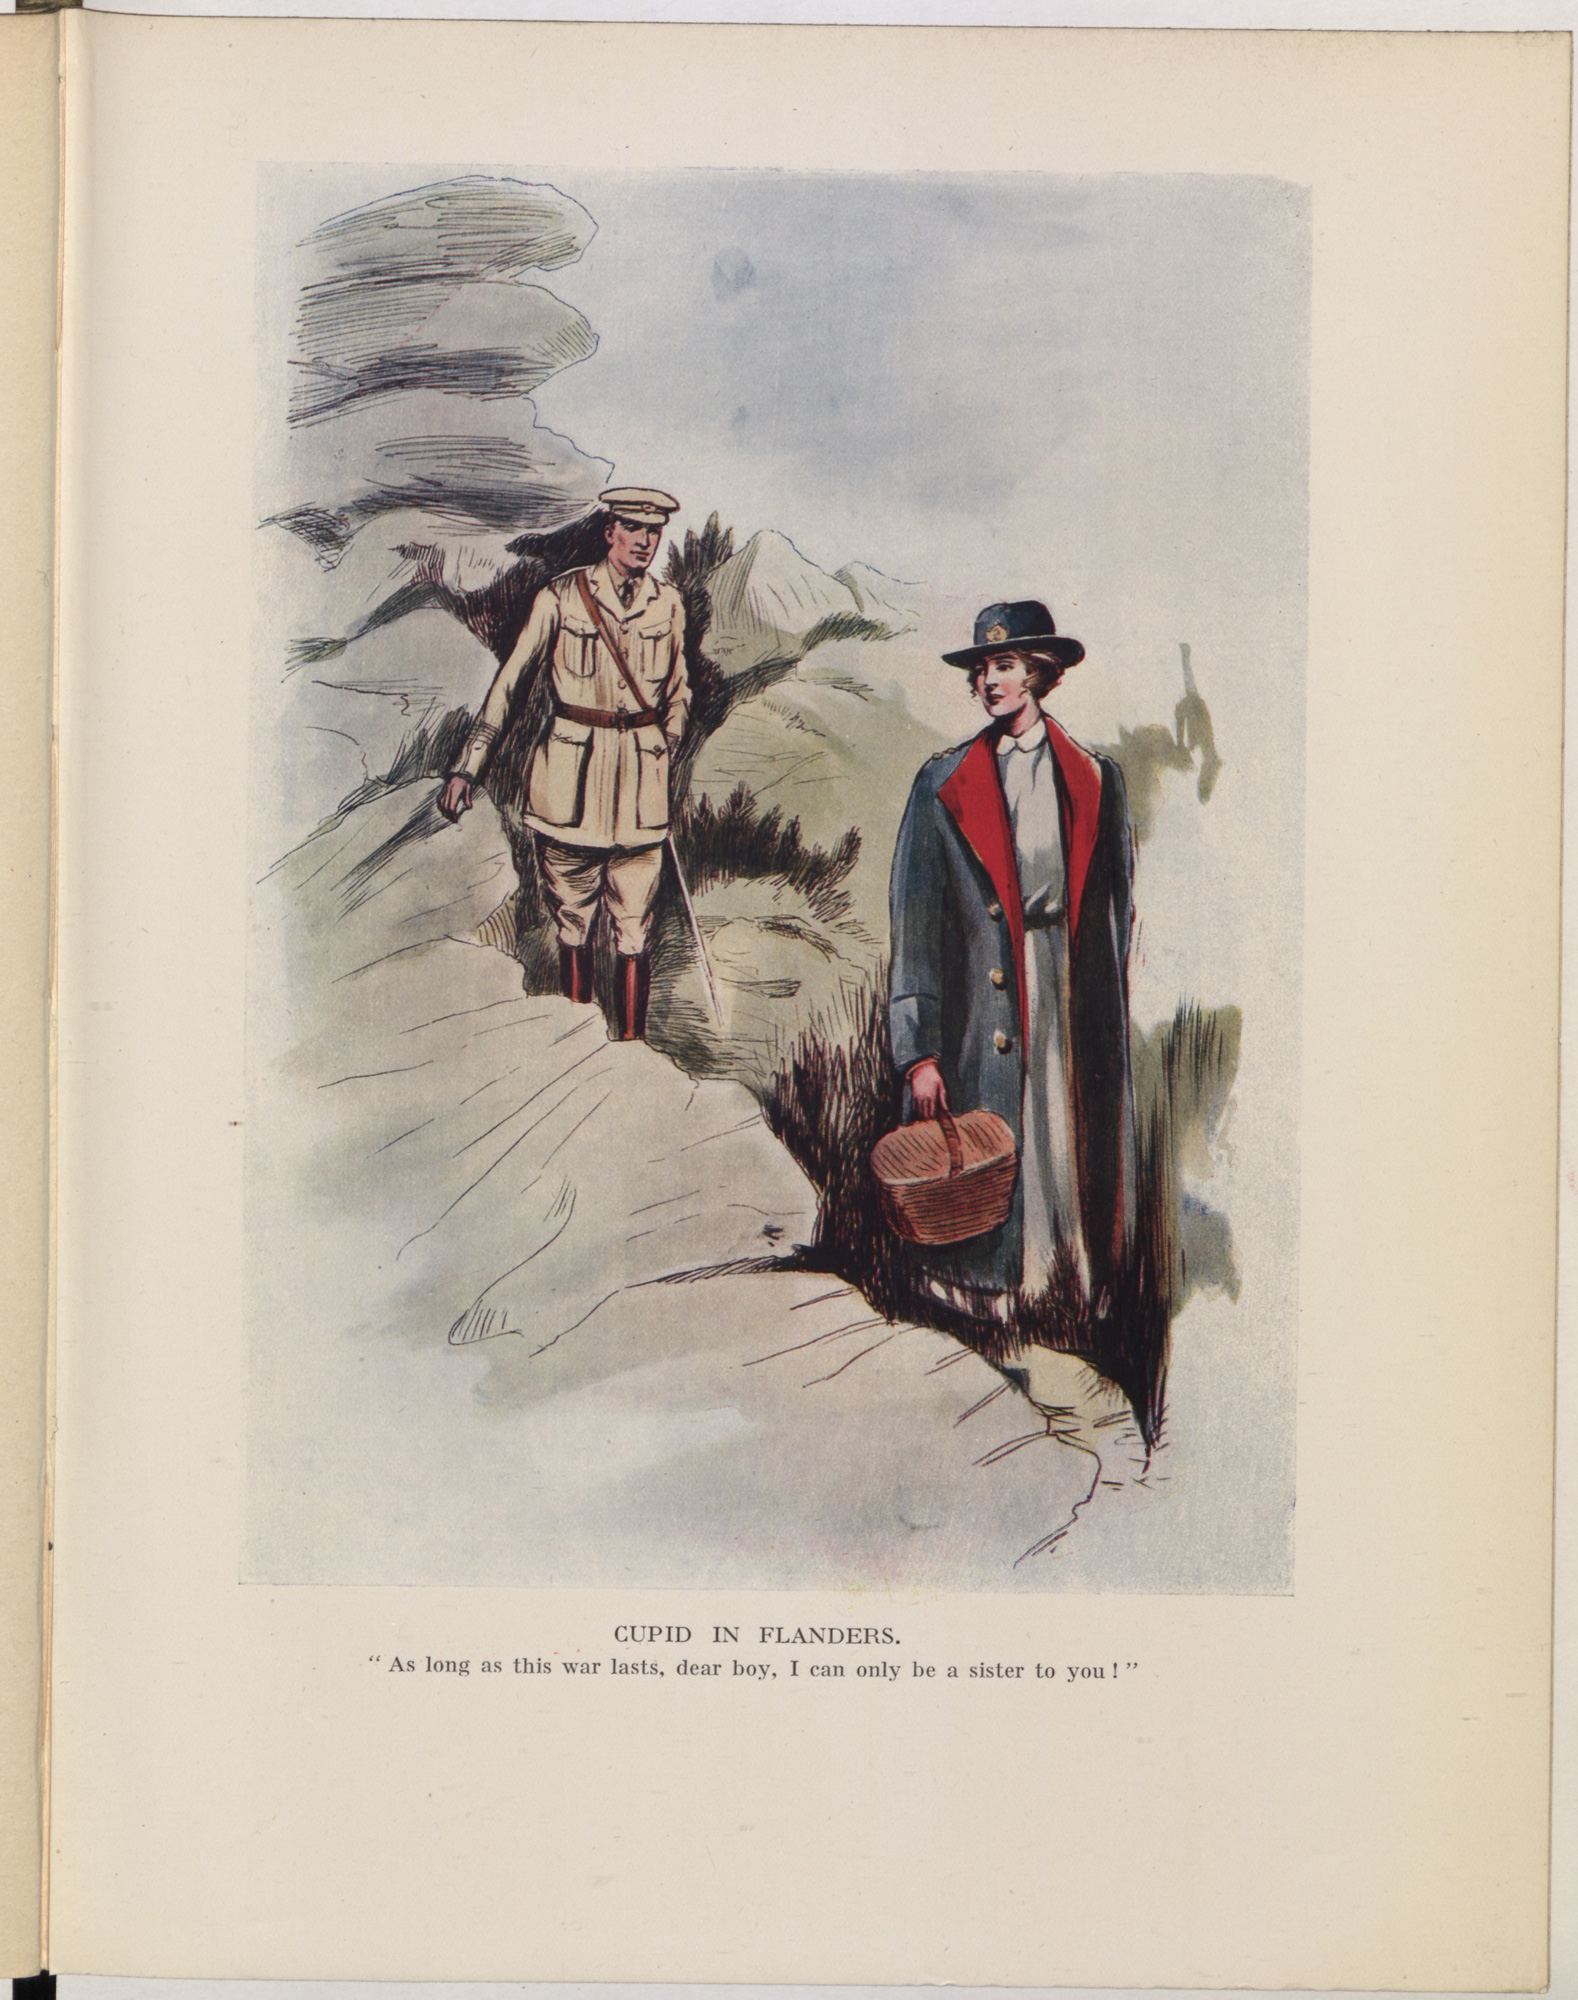 From 'Oh, Canada!', a medley of stories, verse, pictures and music contributed by the Canadian Expeditionary Force.